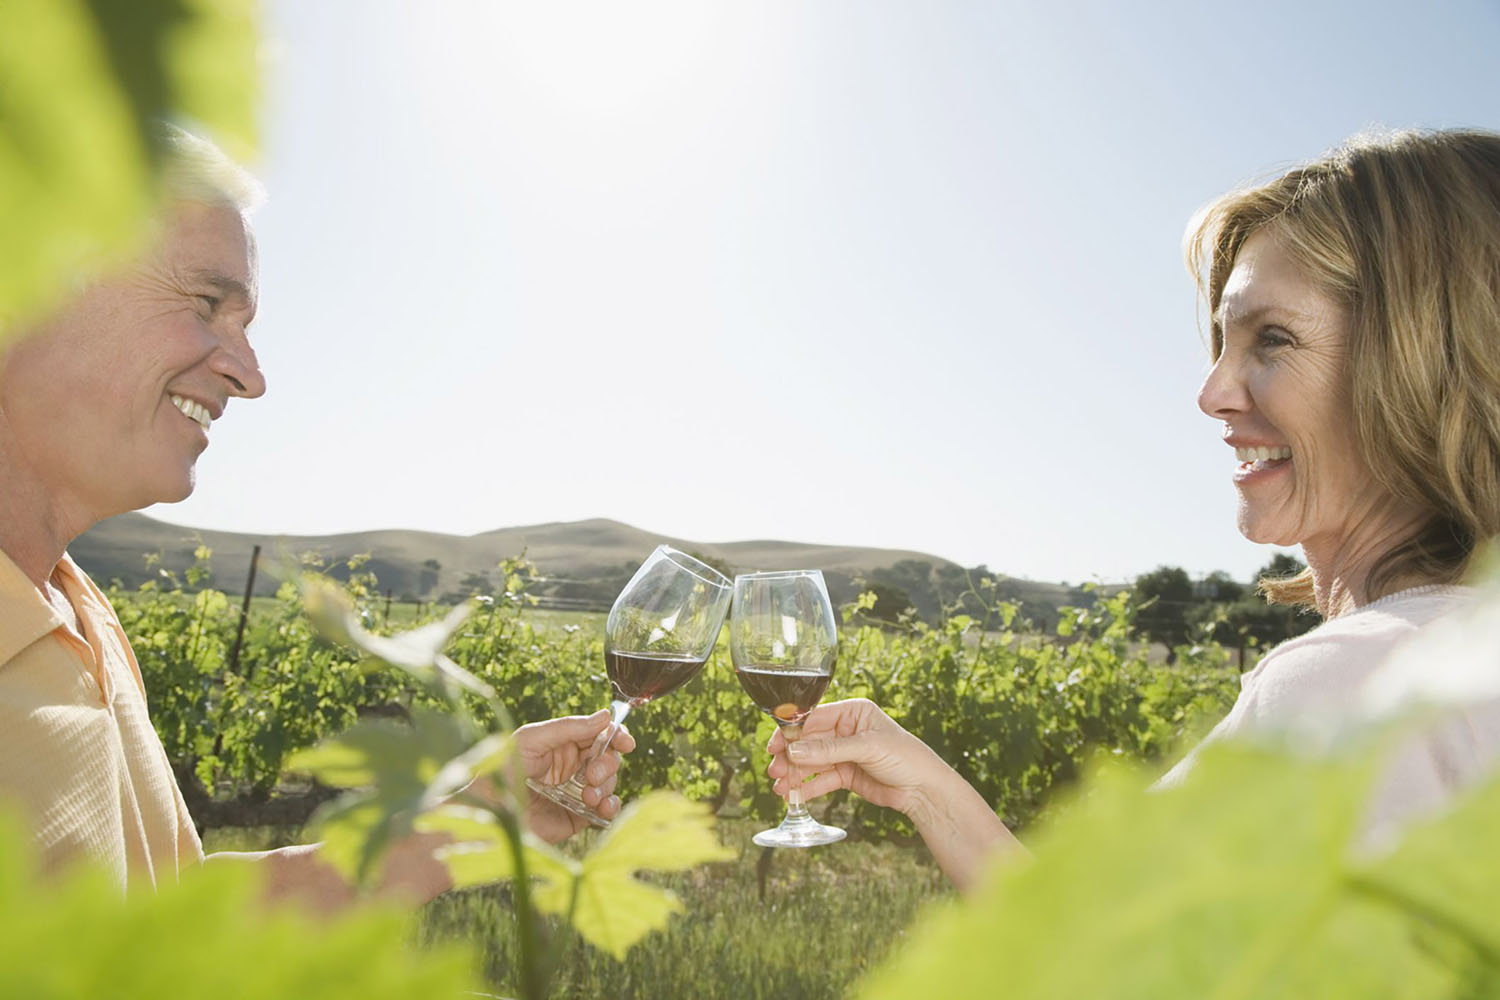 Couple toasting with wine glasses in vineyard